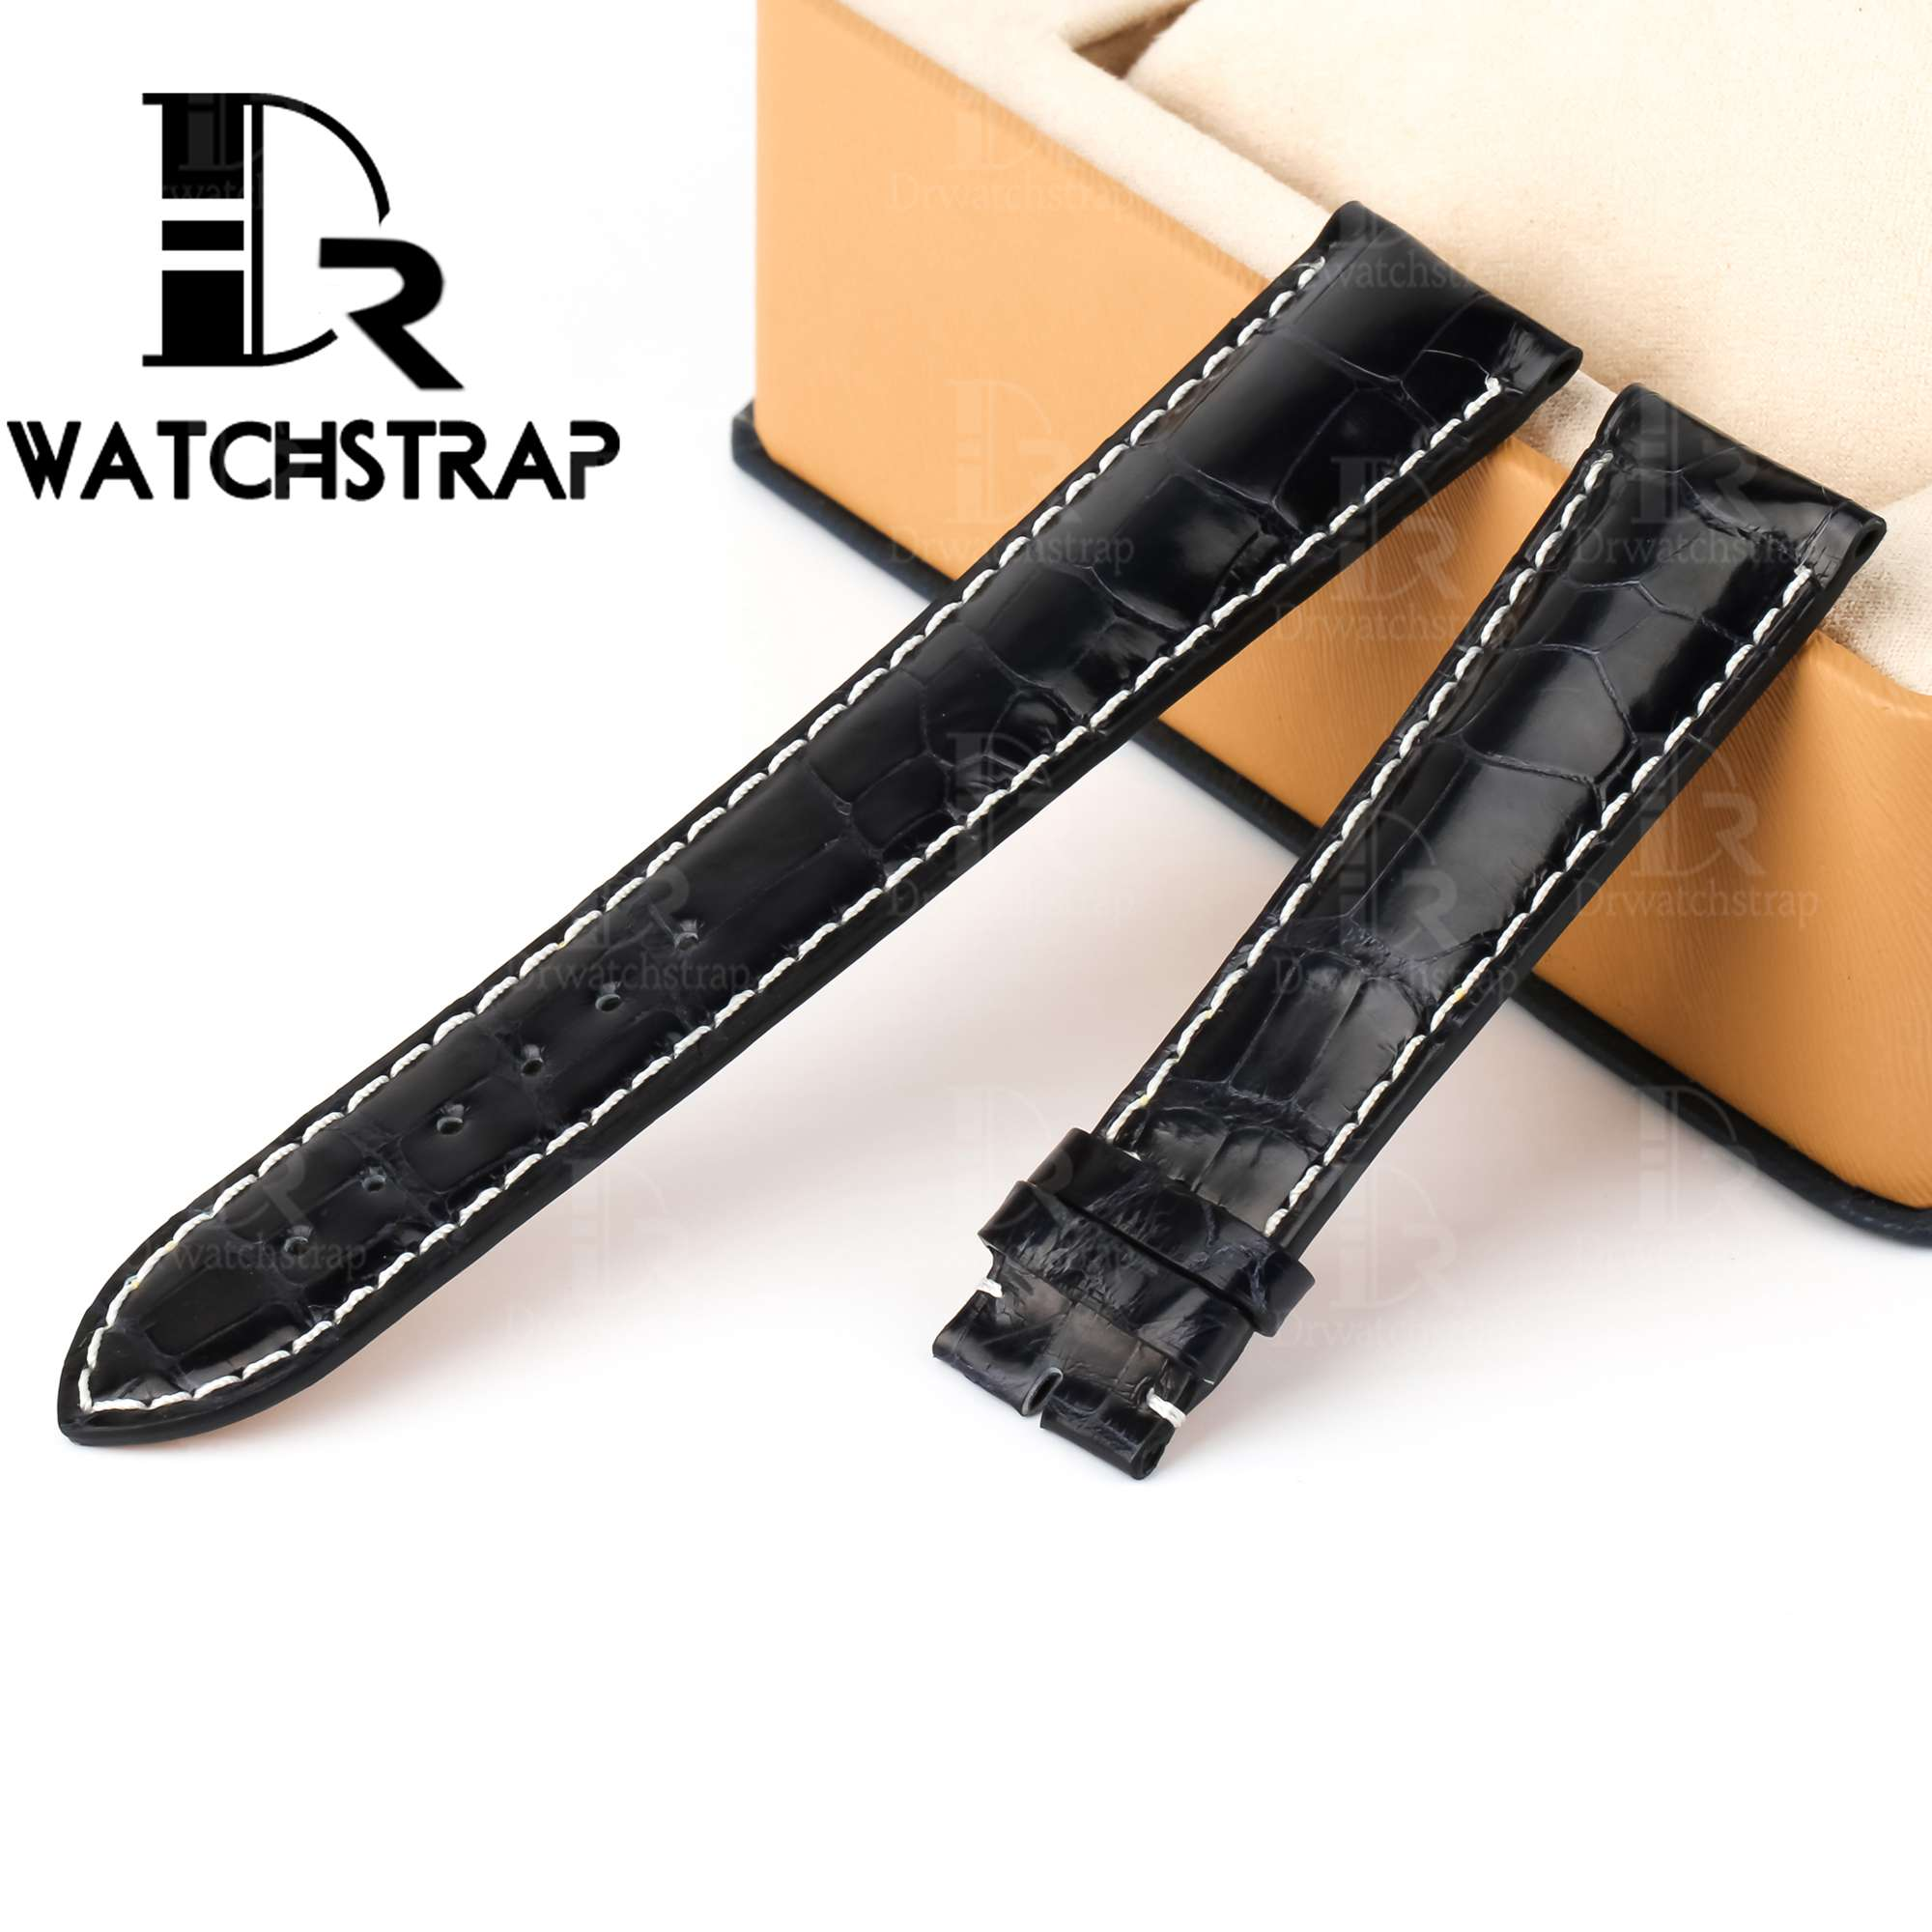 Buy Replacement America alligator leather watch band strap for Breitling Bentley Navitimer Superocean wristwatch strap